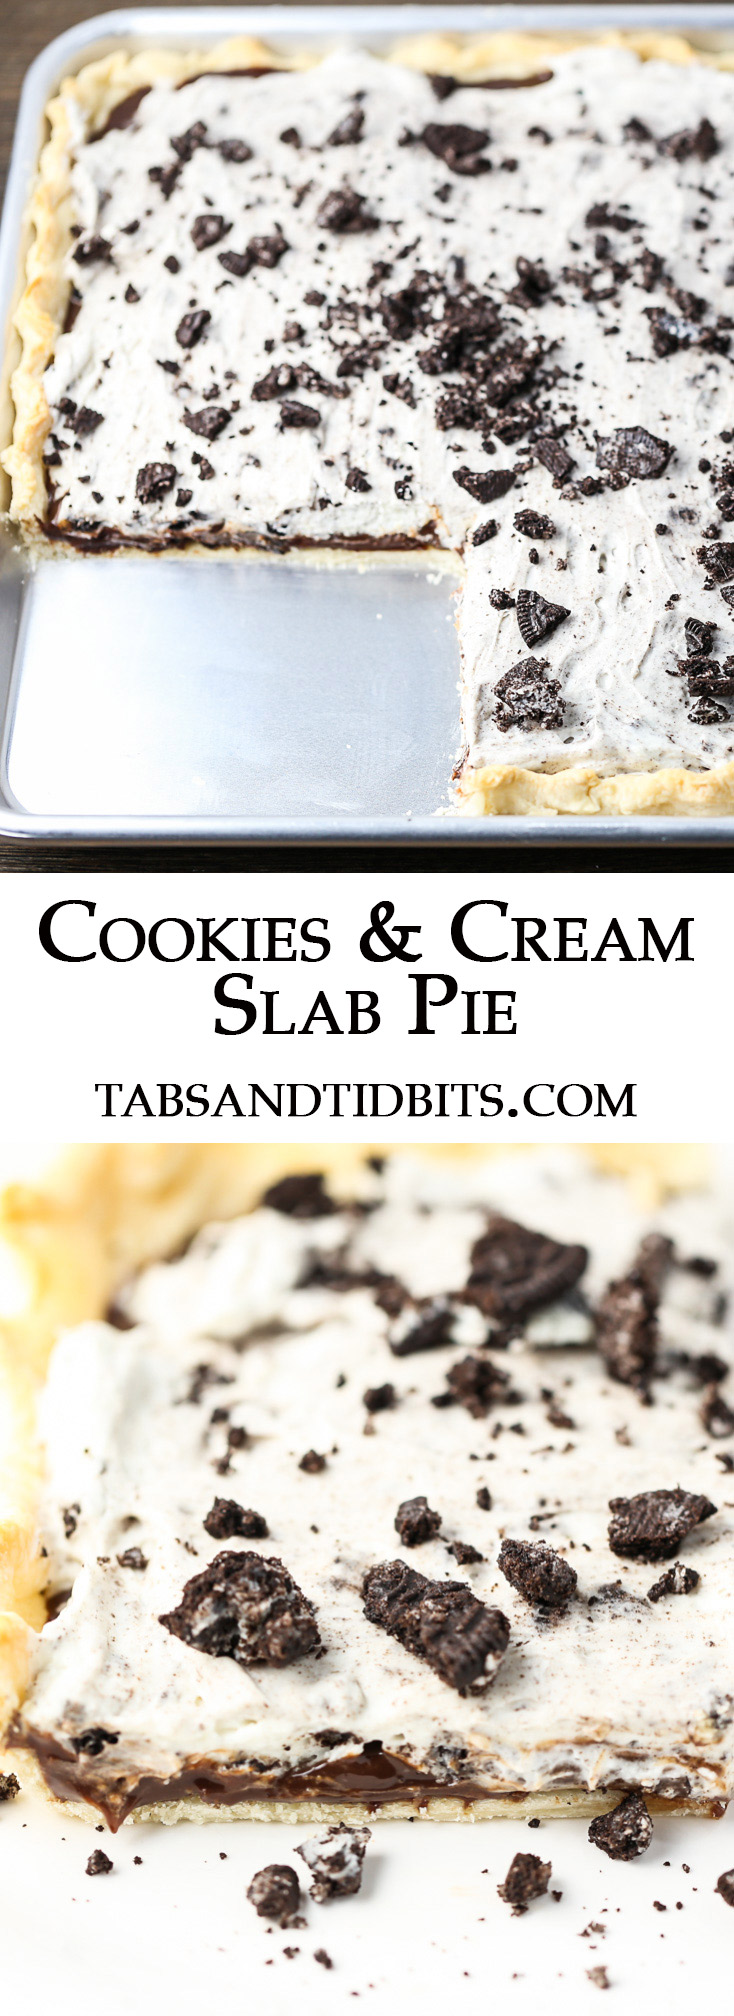 Pie crust layered with fudge sauce, a decadent combination of cream cheese and whipped cream with crushed cookies, and a final layer of more crushed cookies!